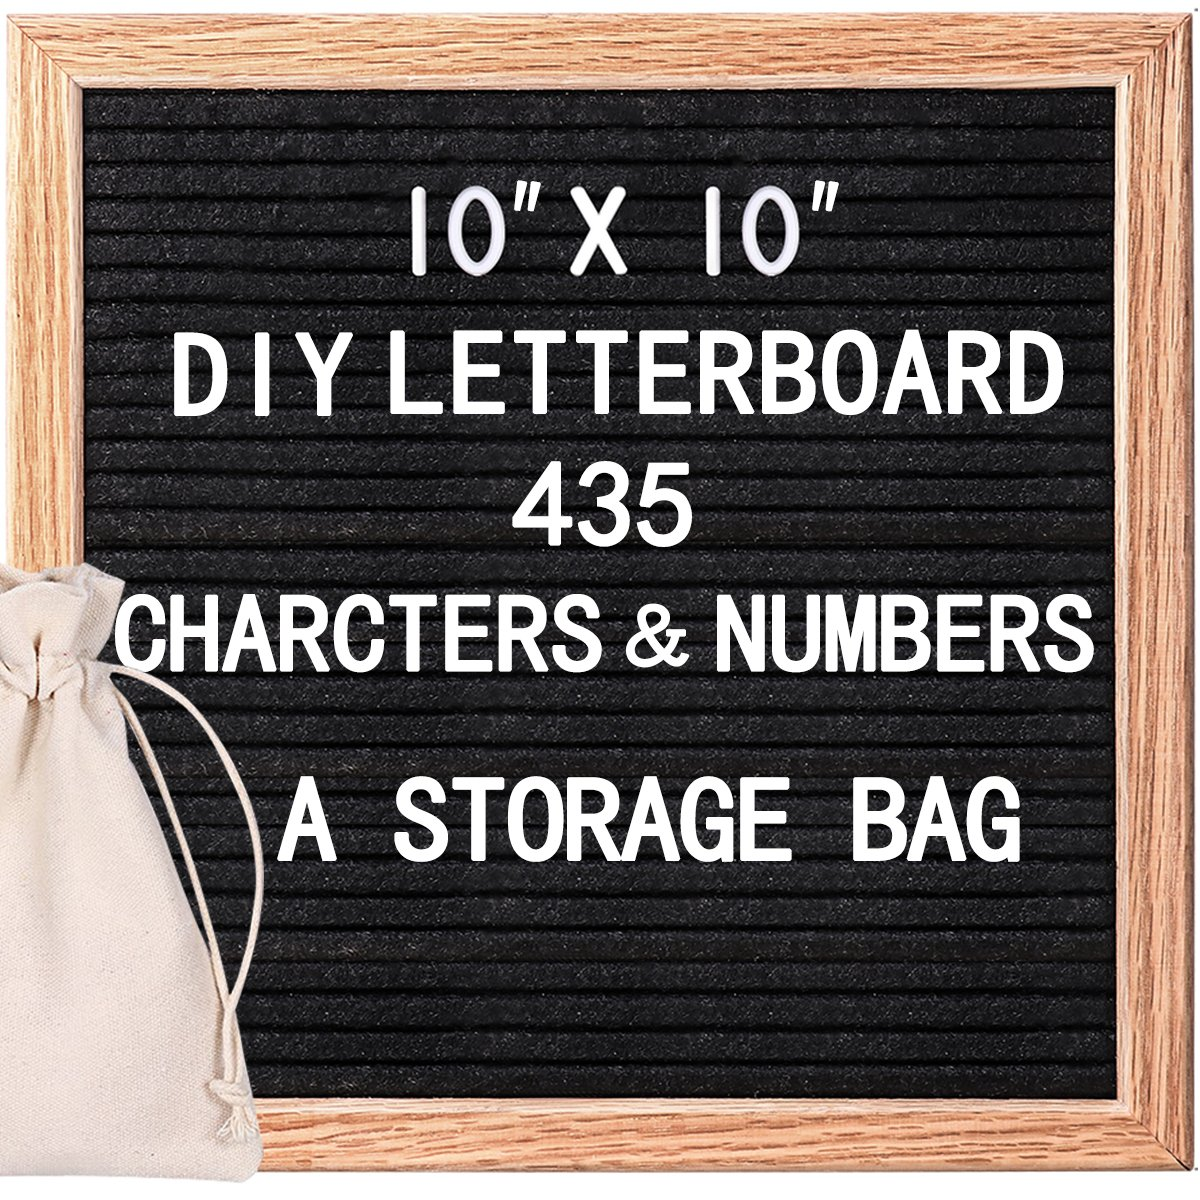 HOMEMAXS Changeable Letter Board Message Board 10x10 inches with 435 Letters Numbers & Symbols, Black Felt Letter Board, Felt Board, Word Board, Sign Board with Free Storage Bag